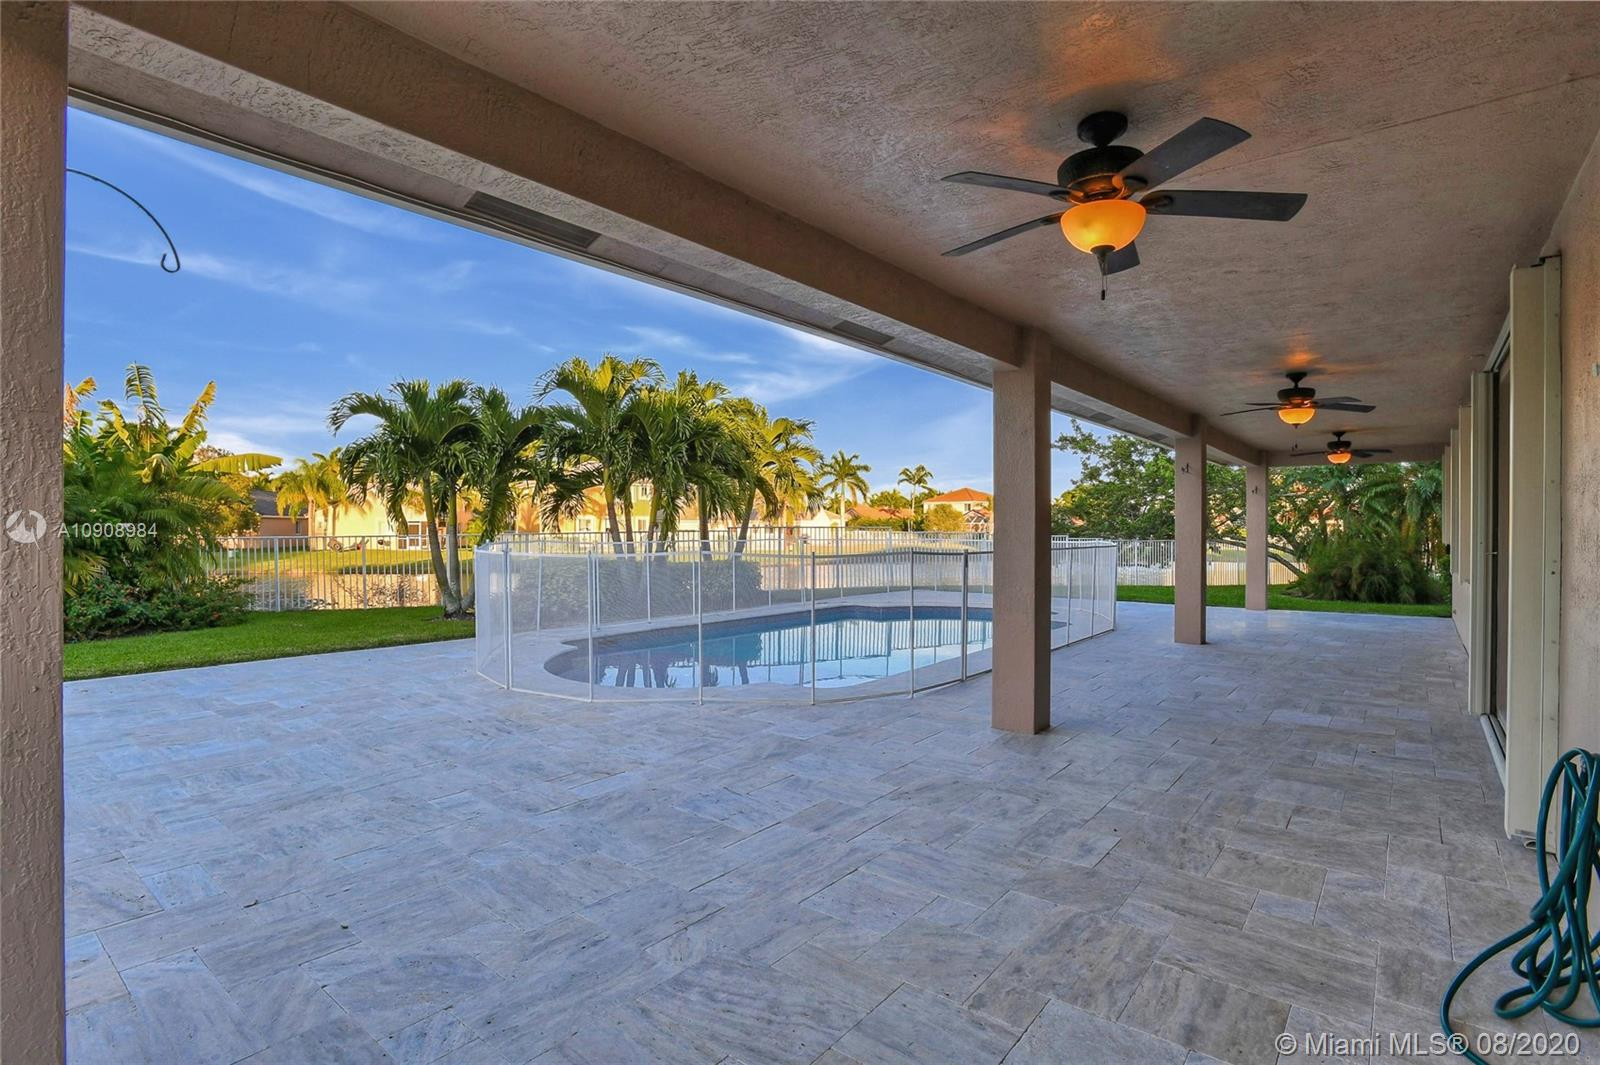 Thumbnail - 1284 Peregrine Way, Weston FL 33327